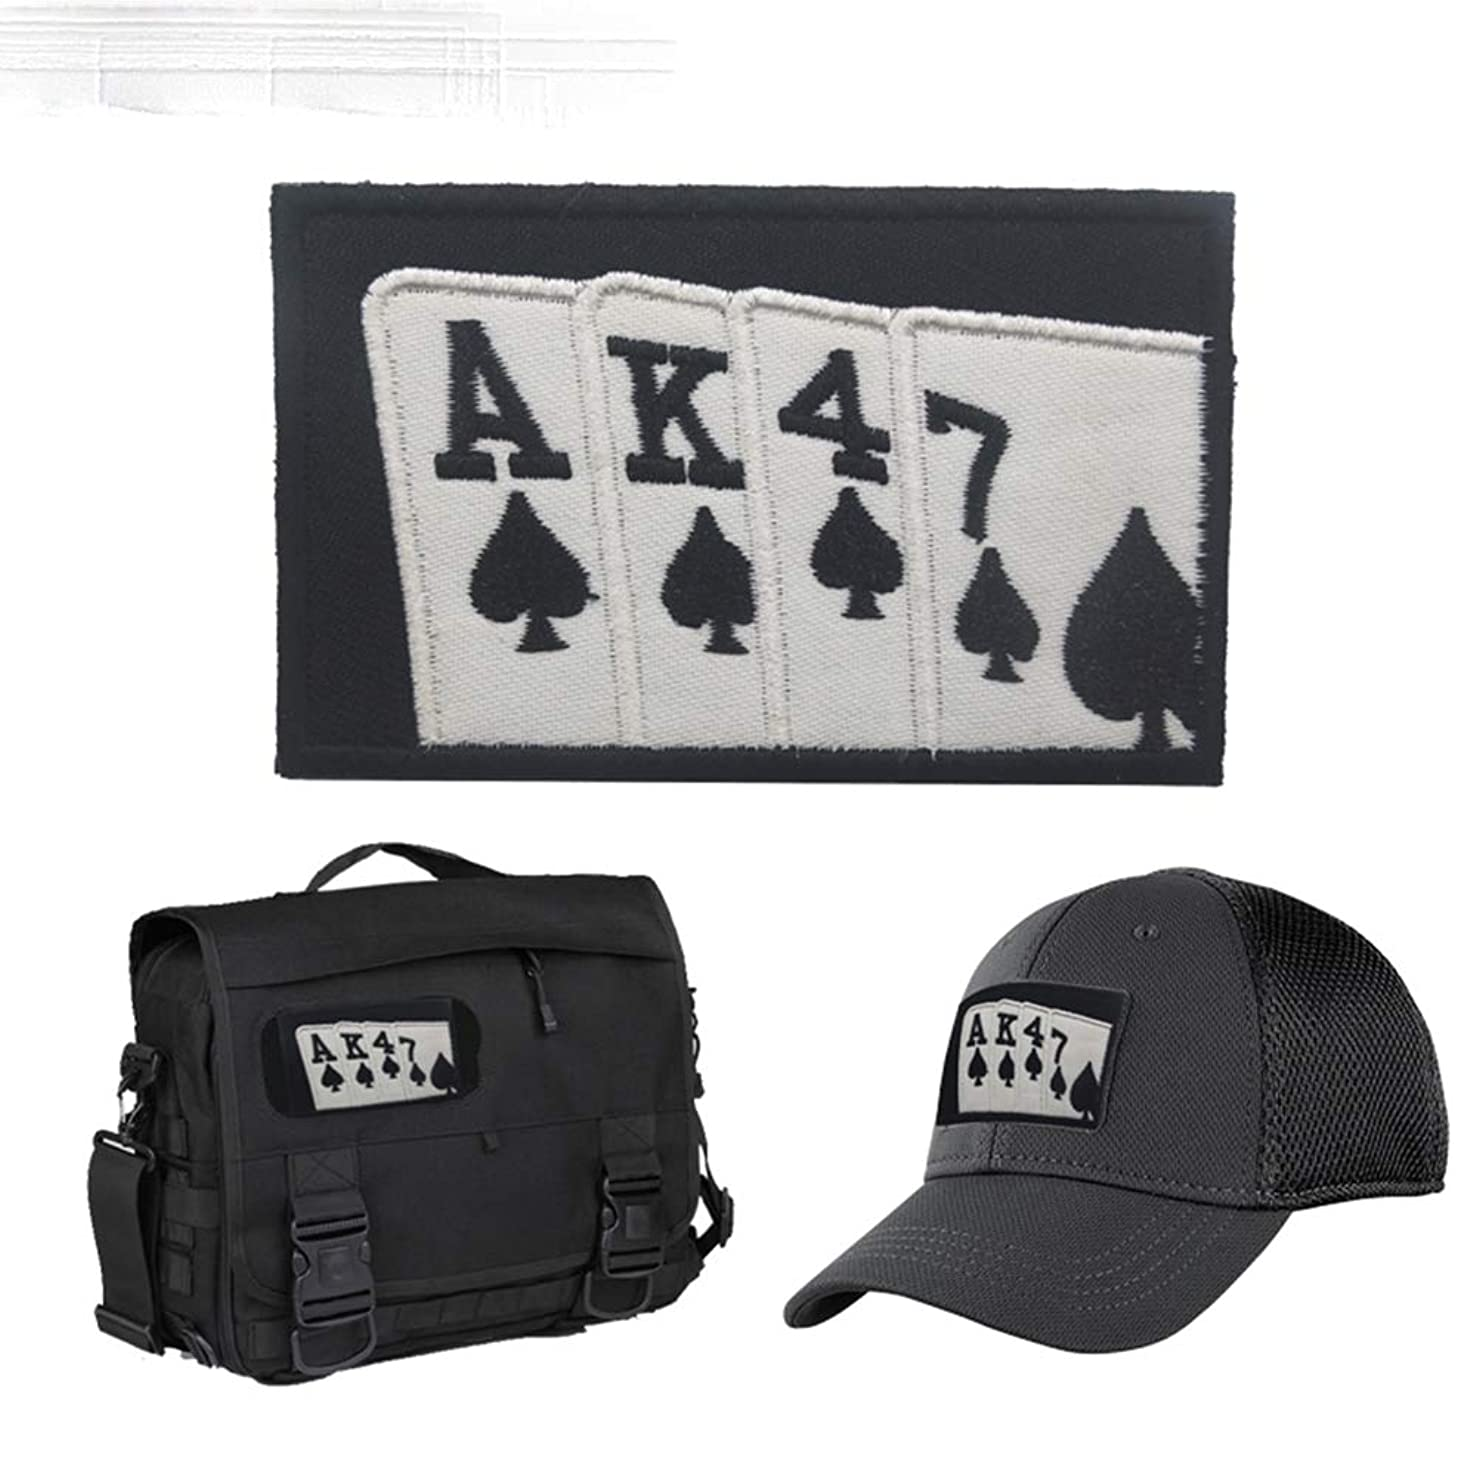 AK47 Patch, Morale Tactical Military Army Gear, Badge Hook Loop Flag Patch,Backpack, Operator Baseball Cap, Plate Carrier or Vest. 2x3